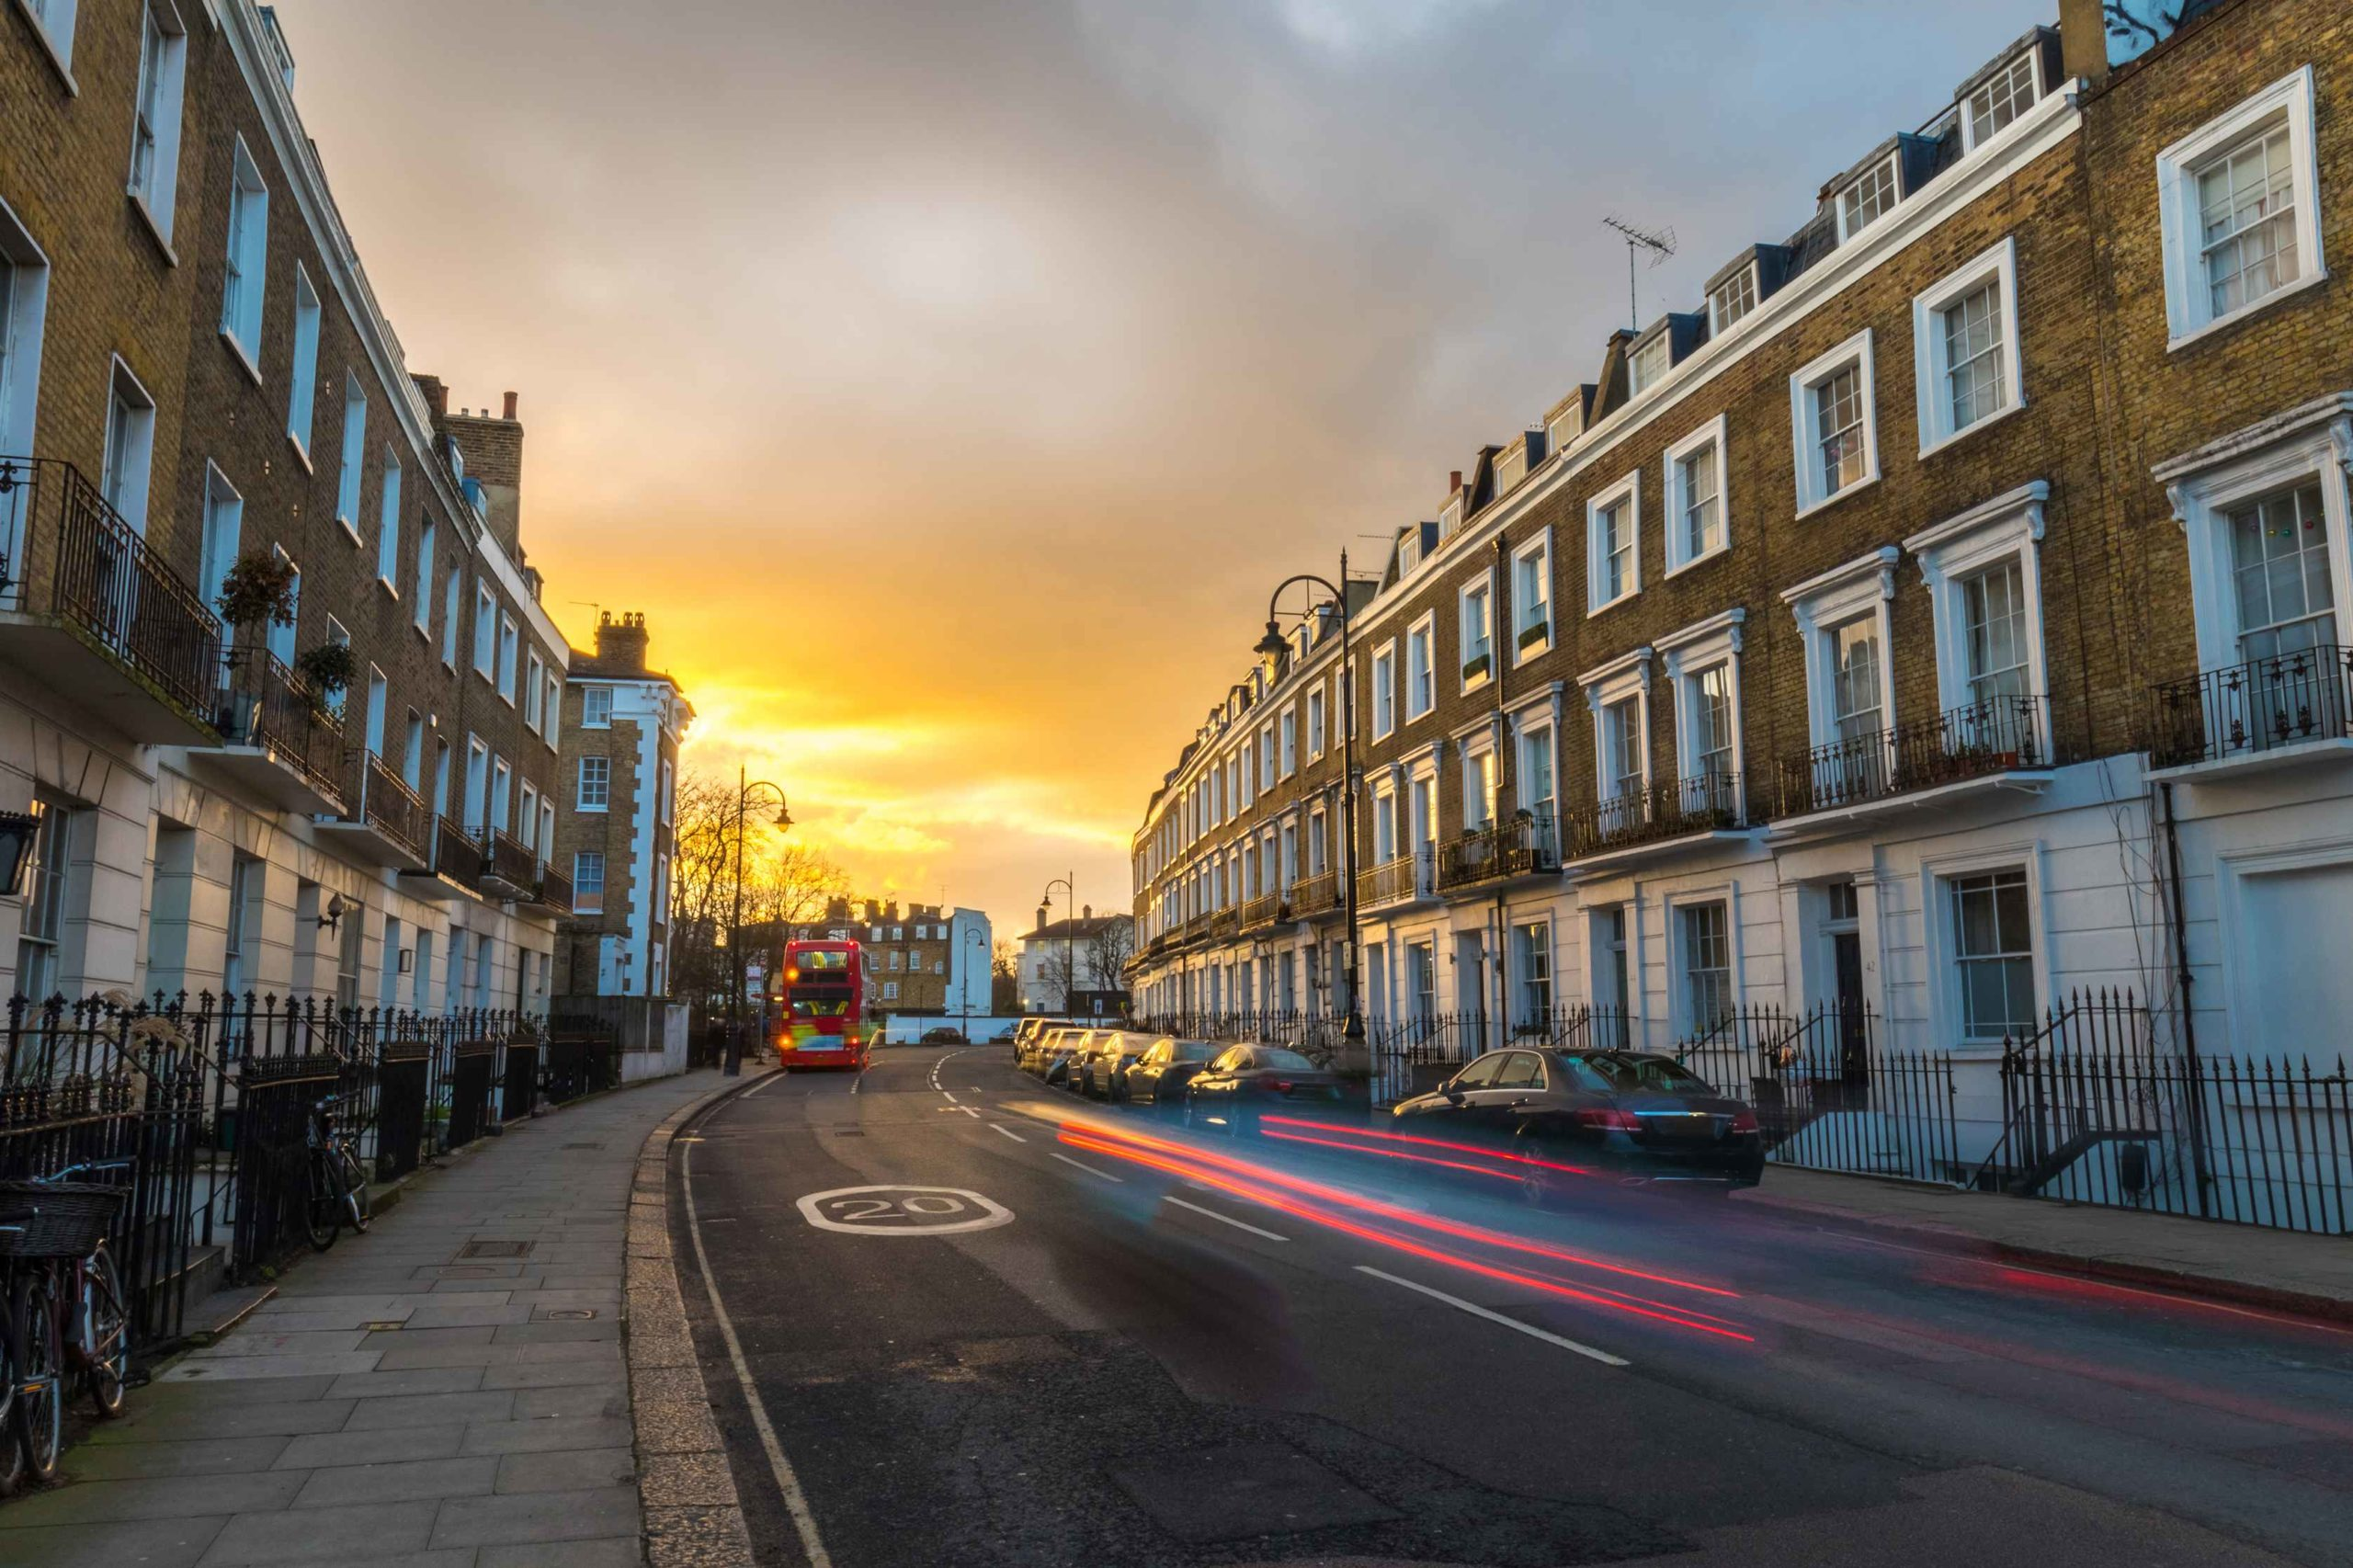 Row of houses in London at dusk